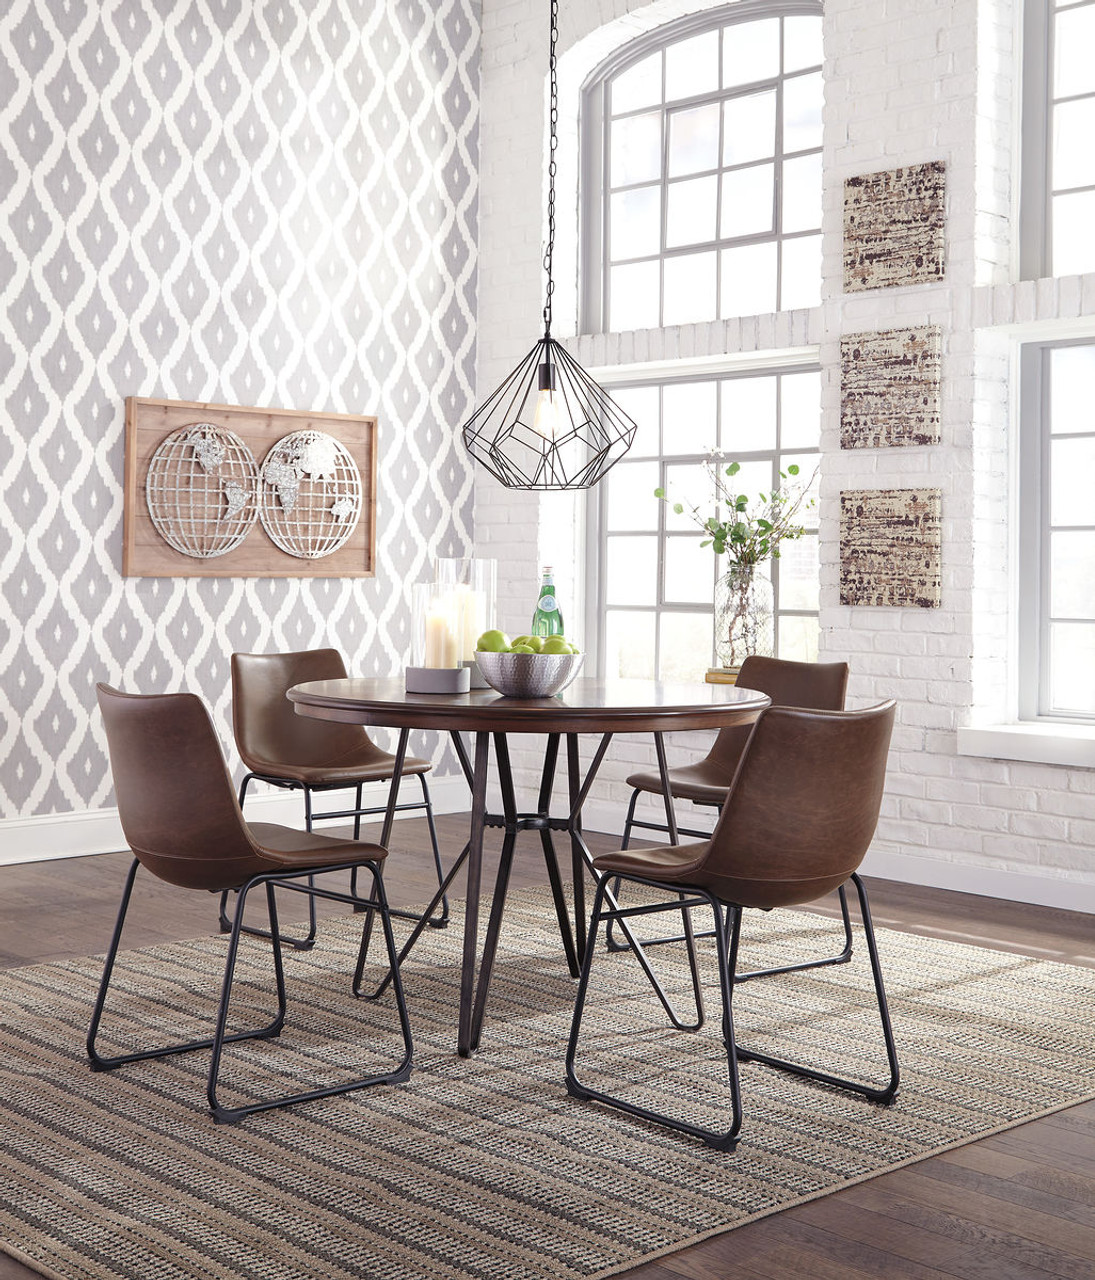 The Centiar Two Tone Brown 5 Pc Round Dining Set Available At Home